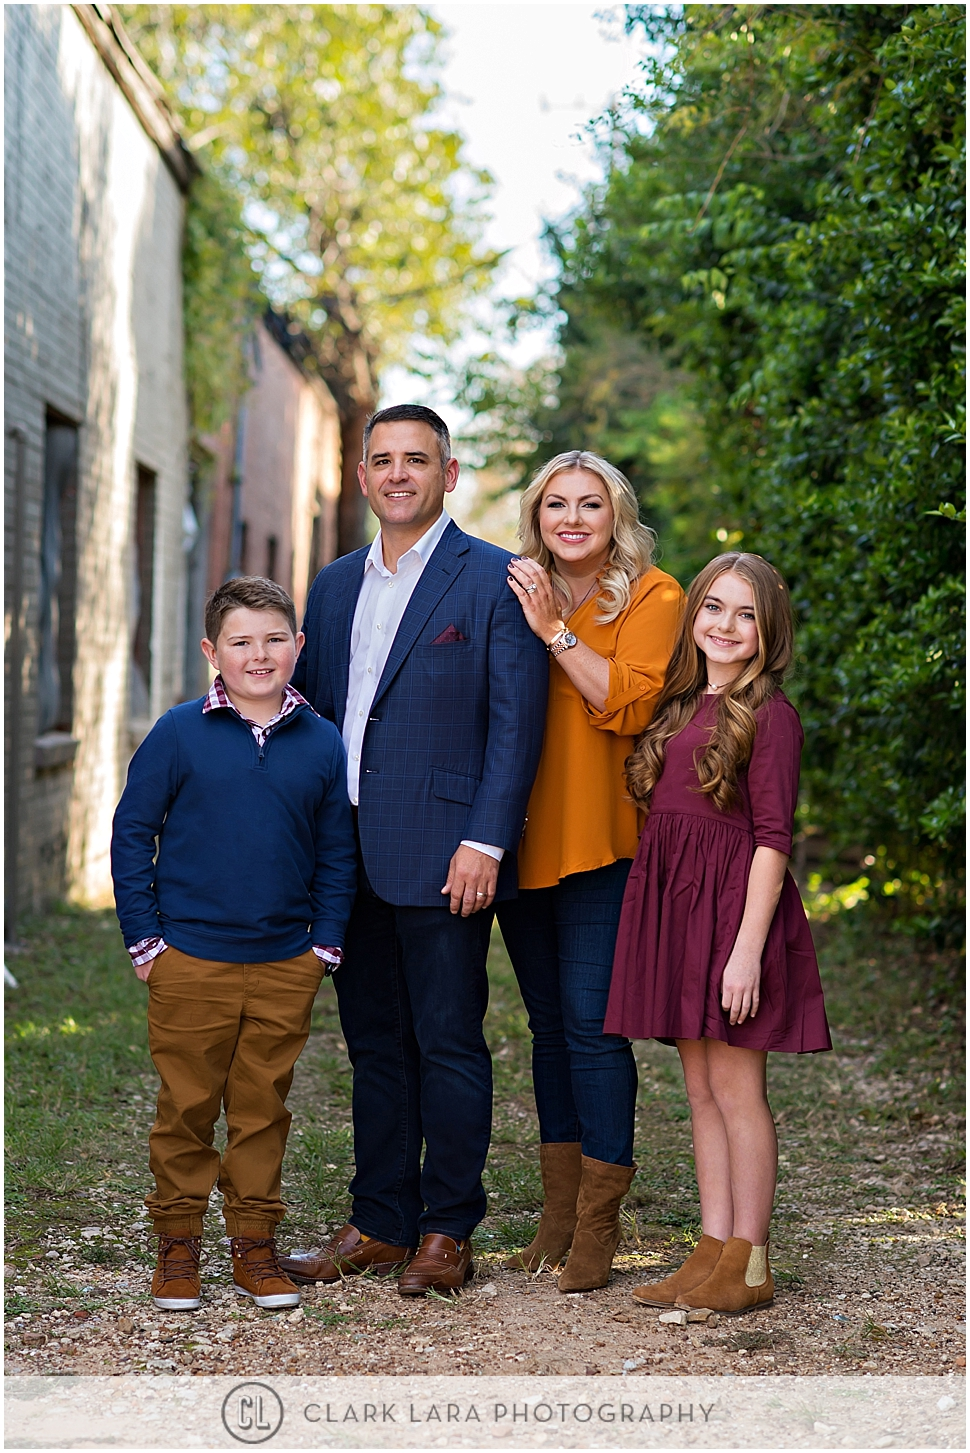 conroe-family-photo-hogan_0002.jpg